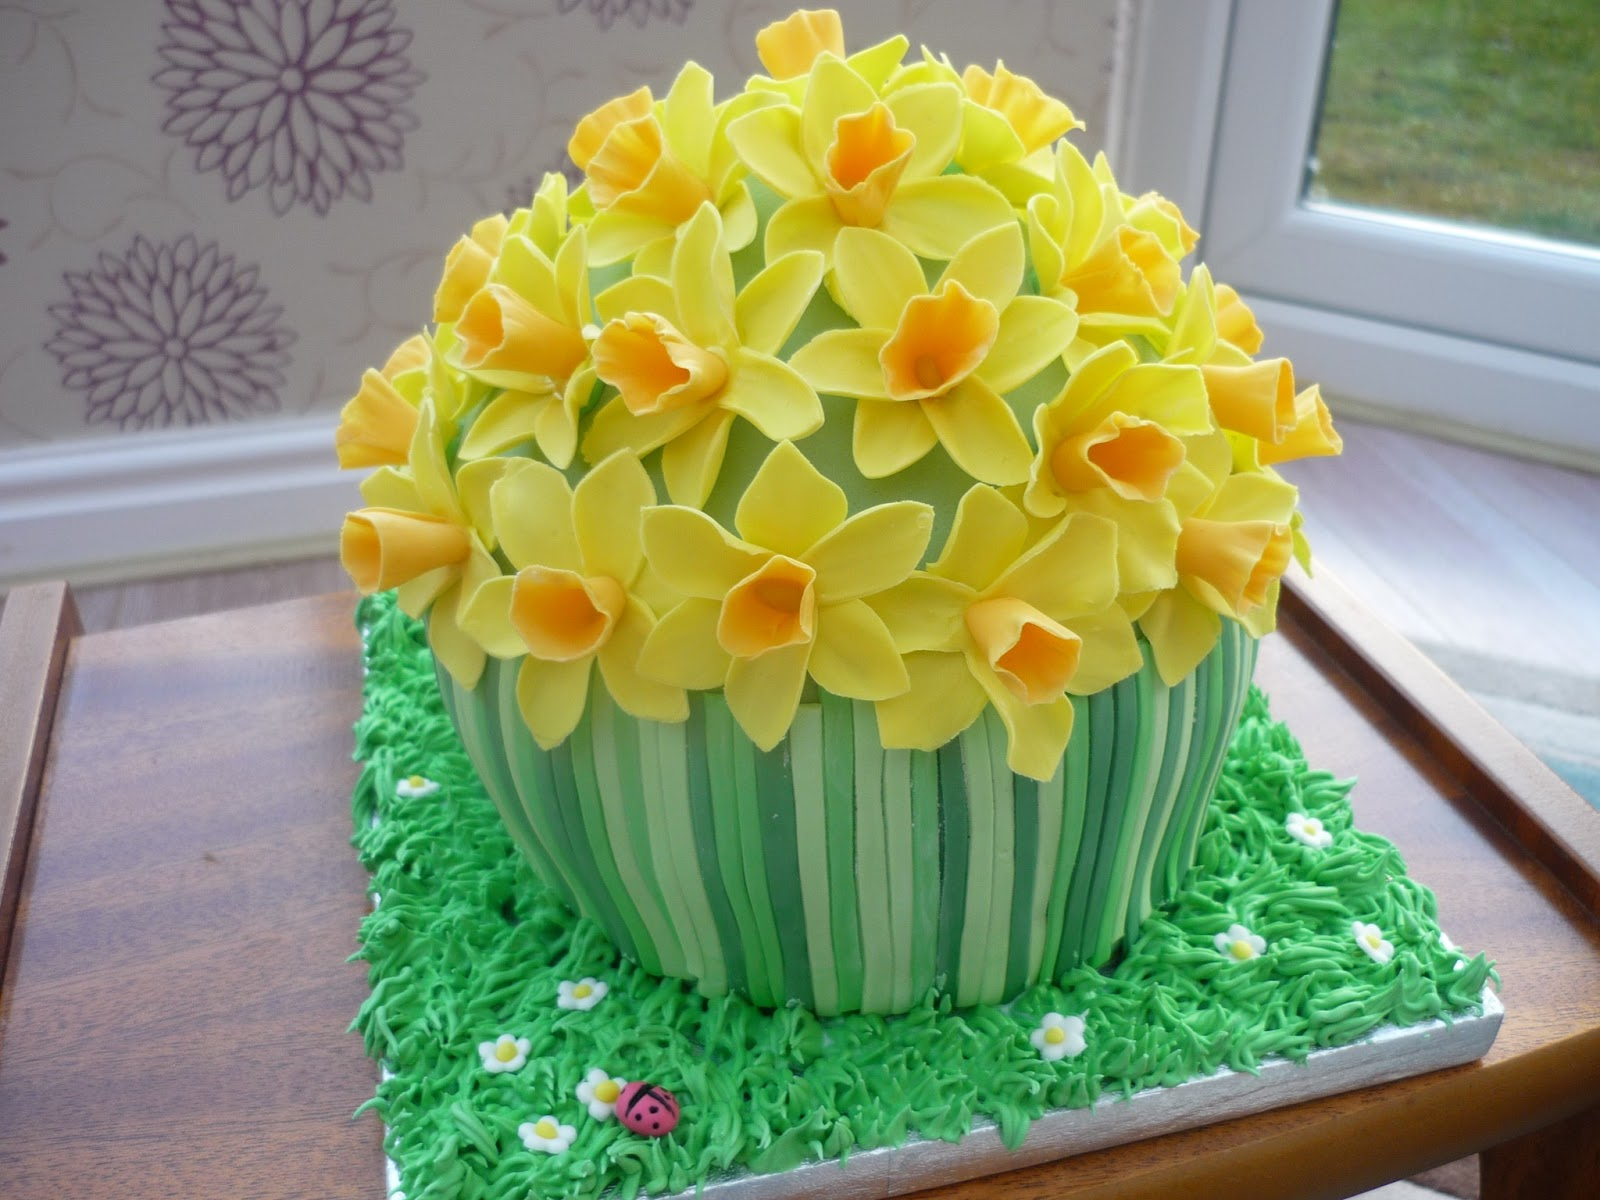 How To Make Daffodils For Cake